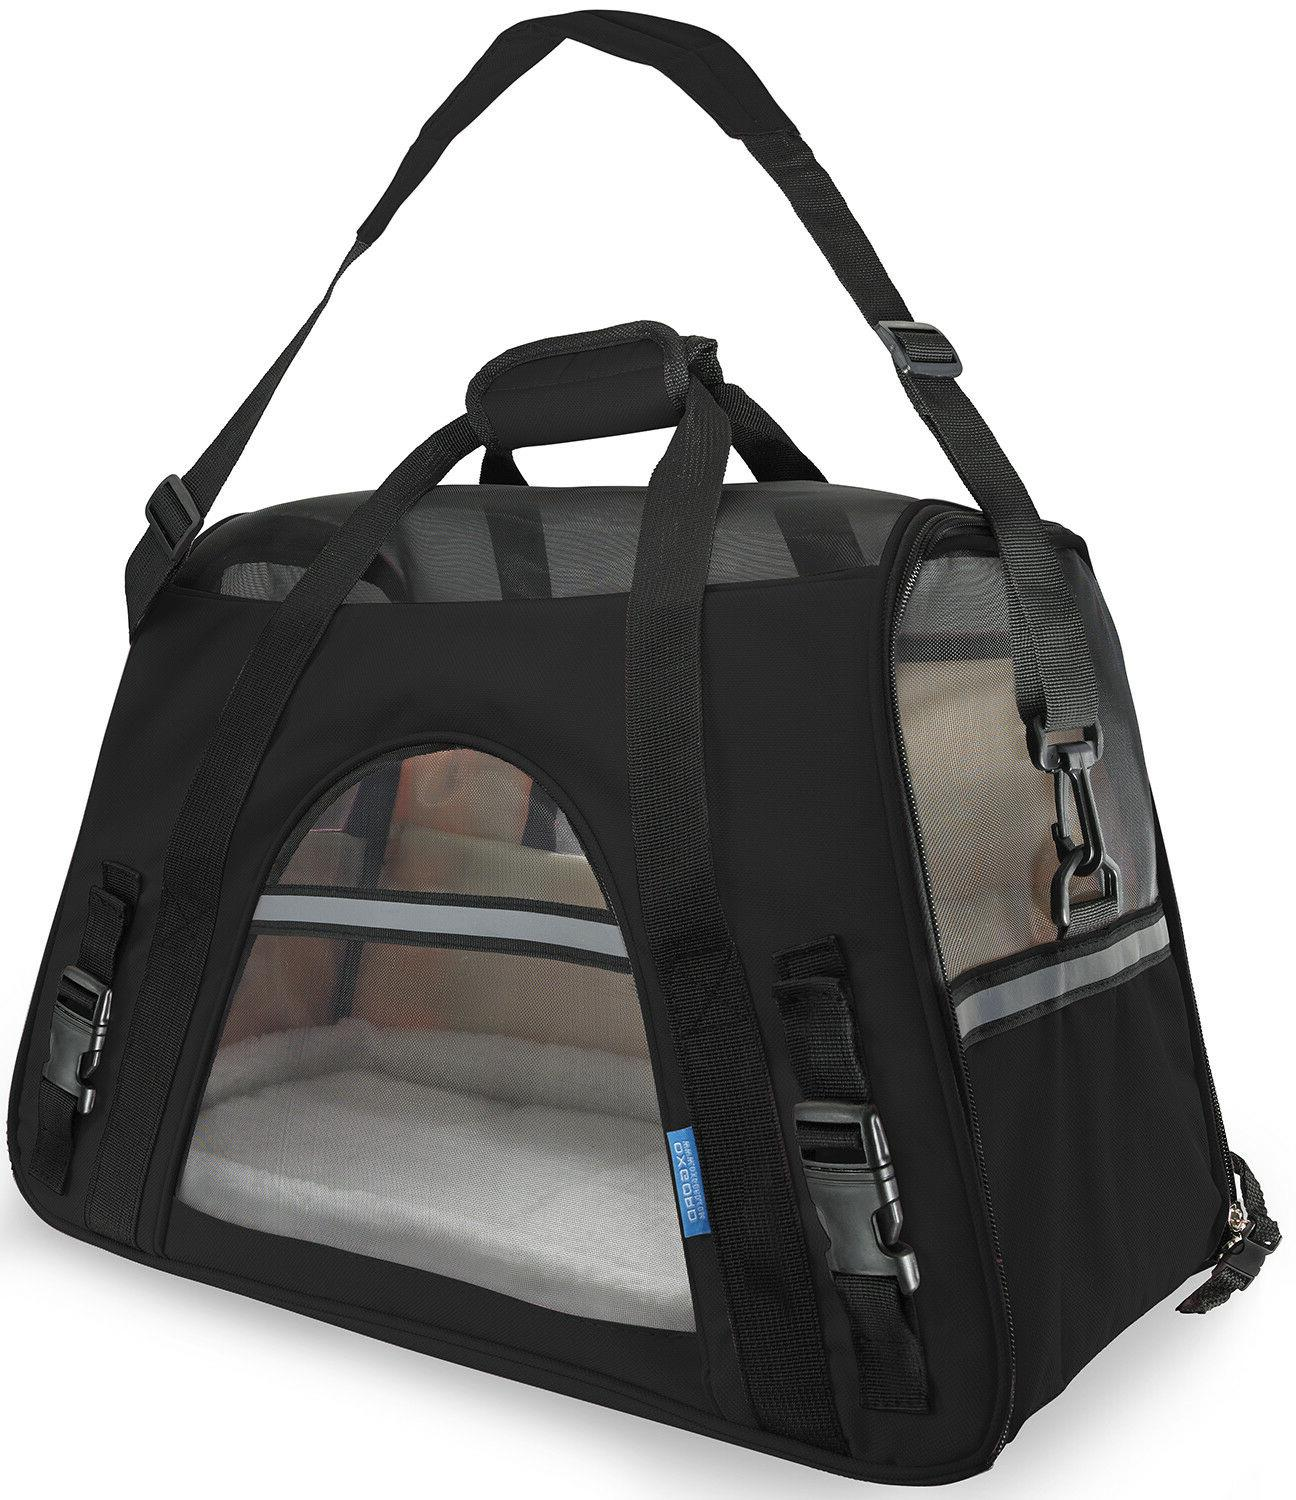 soft sided airline approved travel pet carrier